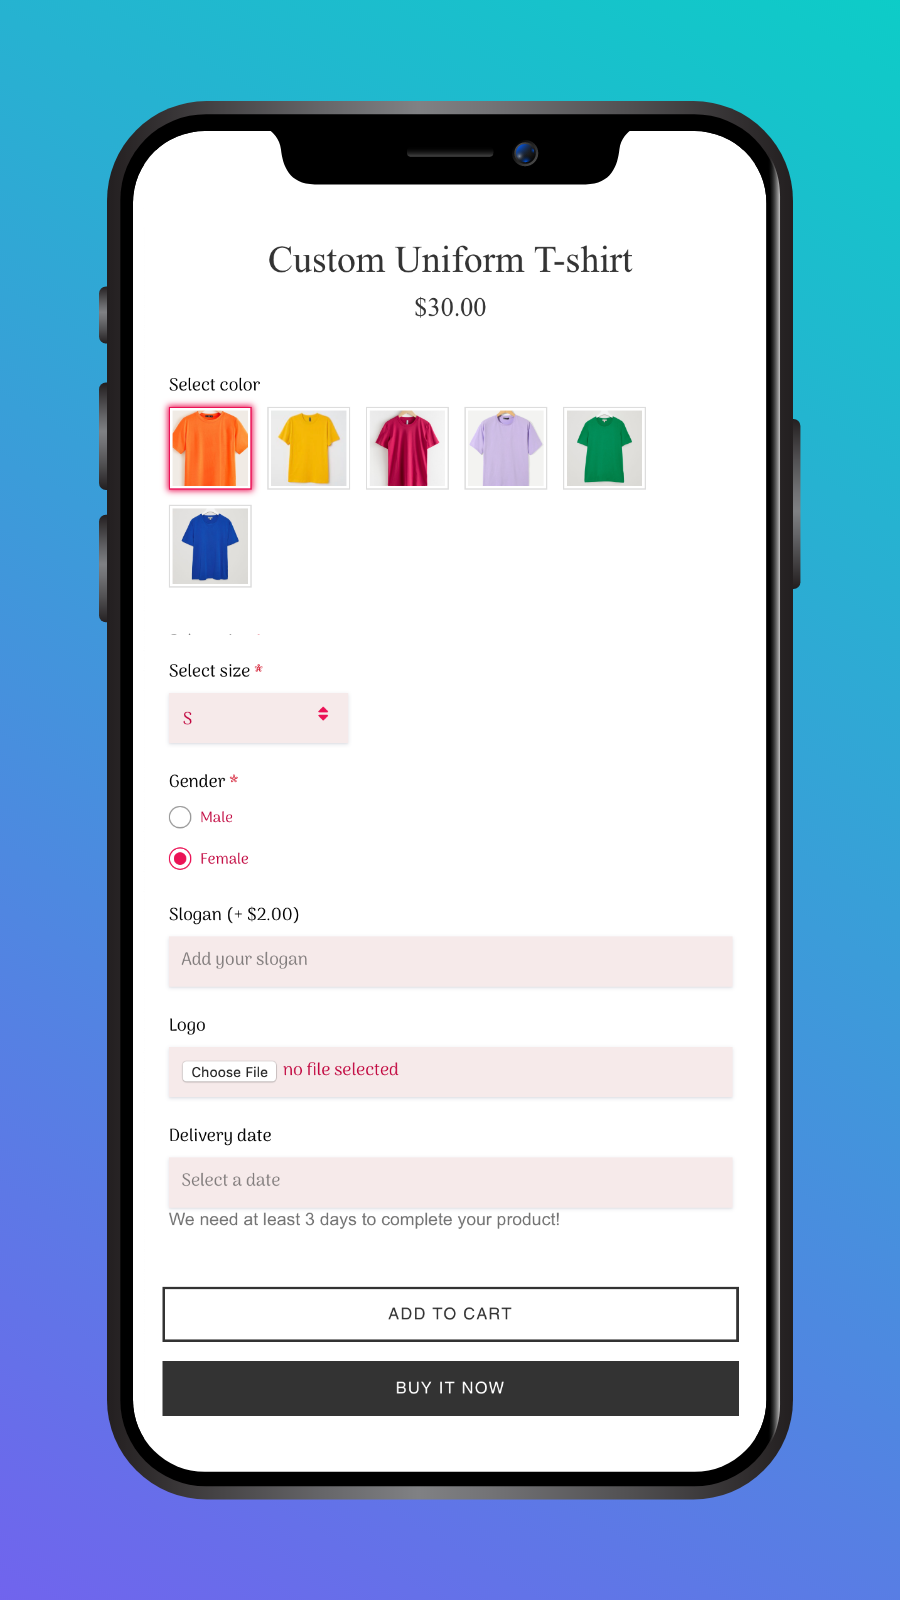 Product options in mobile